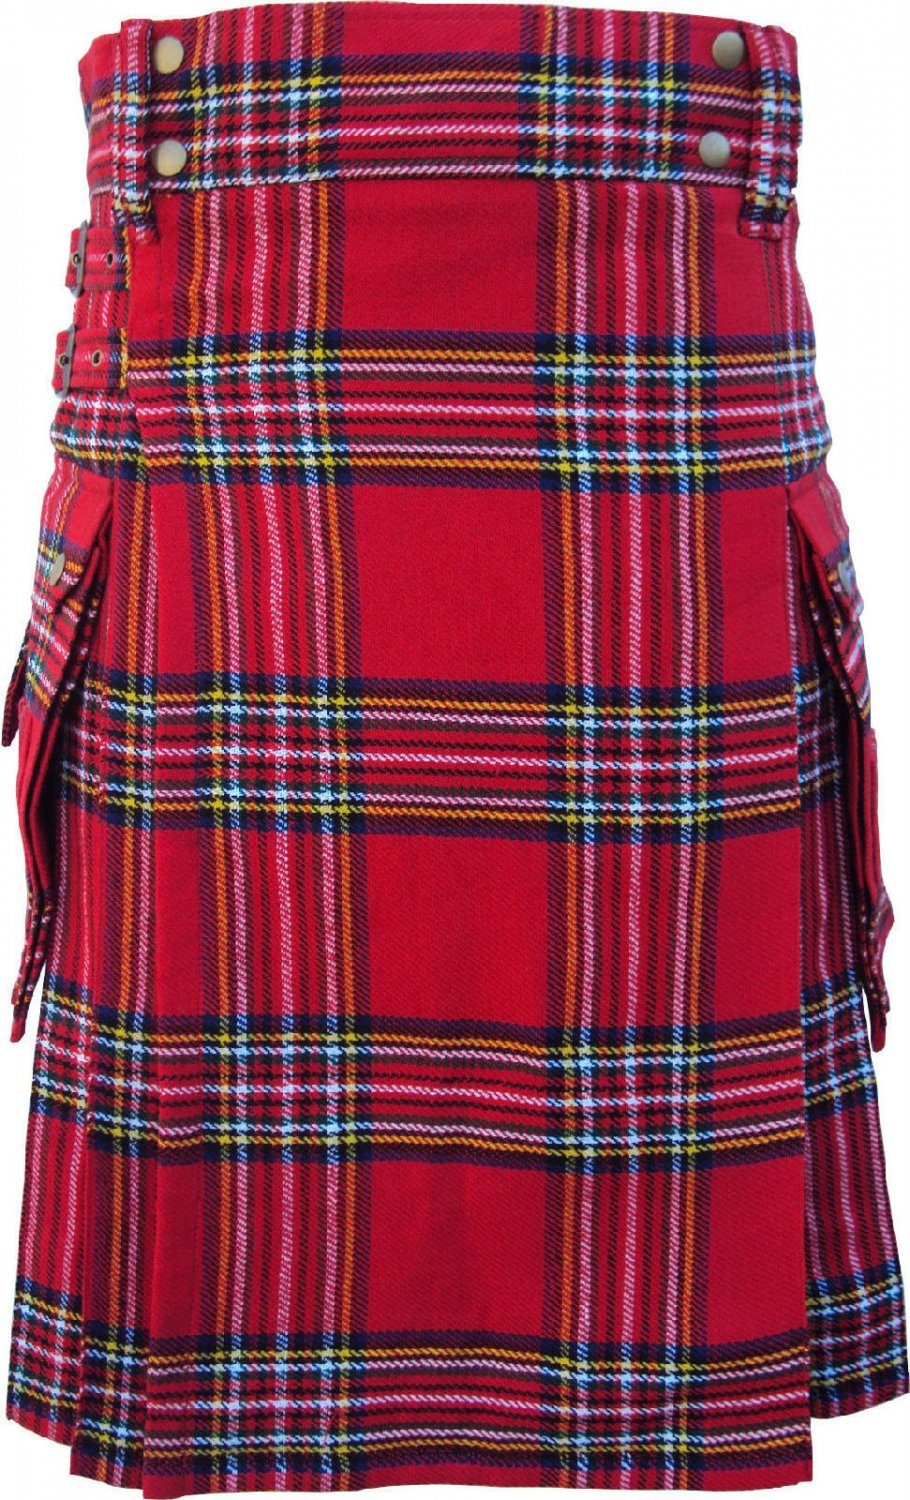 26 Size Royal Stewart Highlander Utility Tartan Kilt for Active Men Scottish Deluxe Utility Kilt